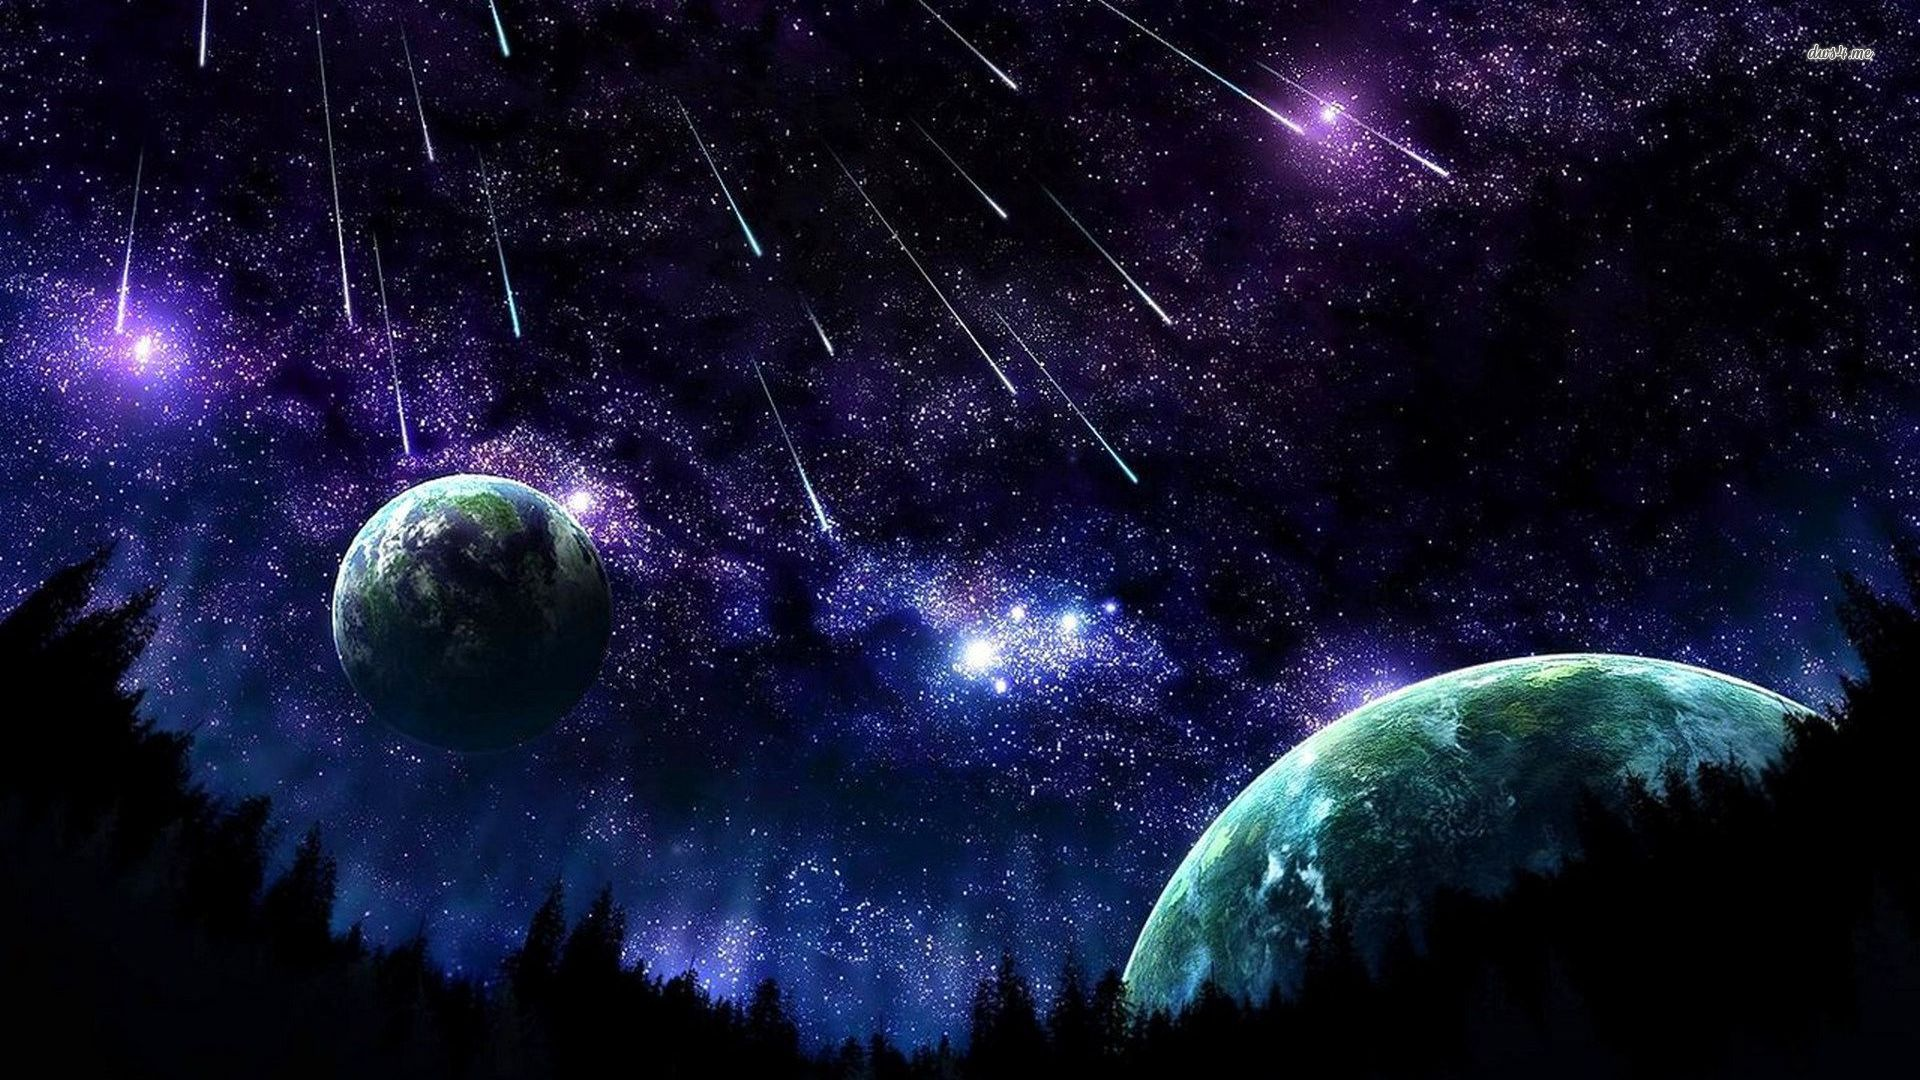 Gallery 13 Beautiful Night Sky Wallpaper Collections 1920x1080